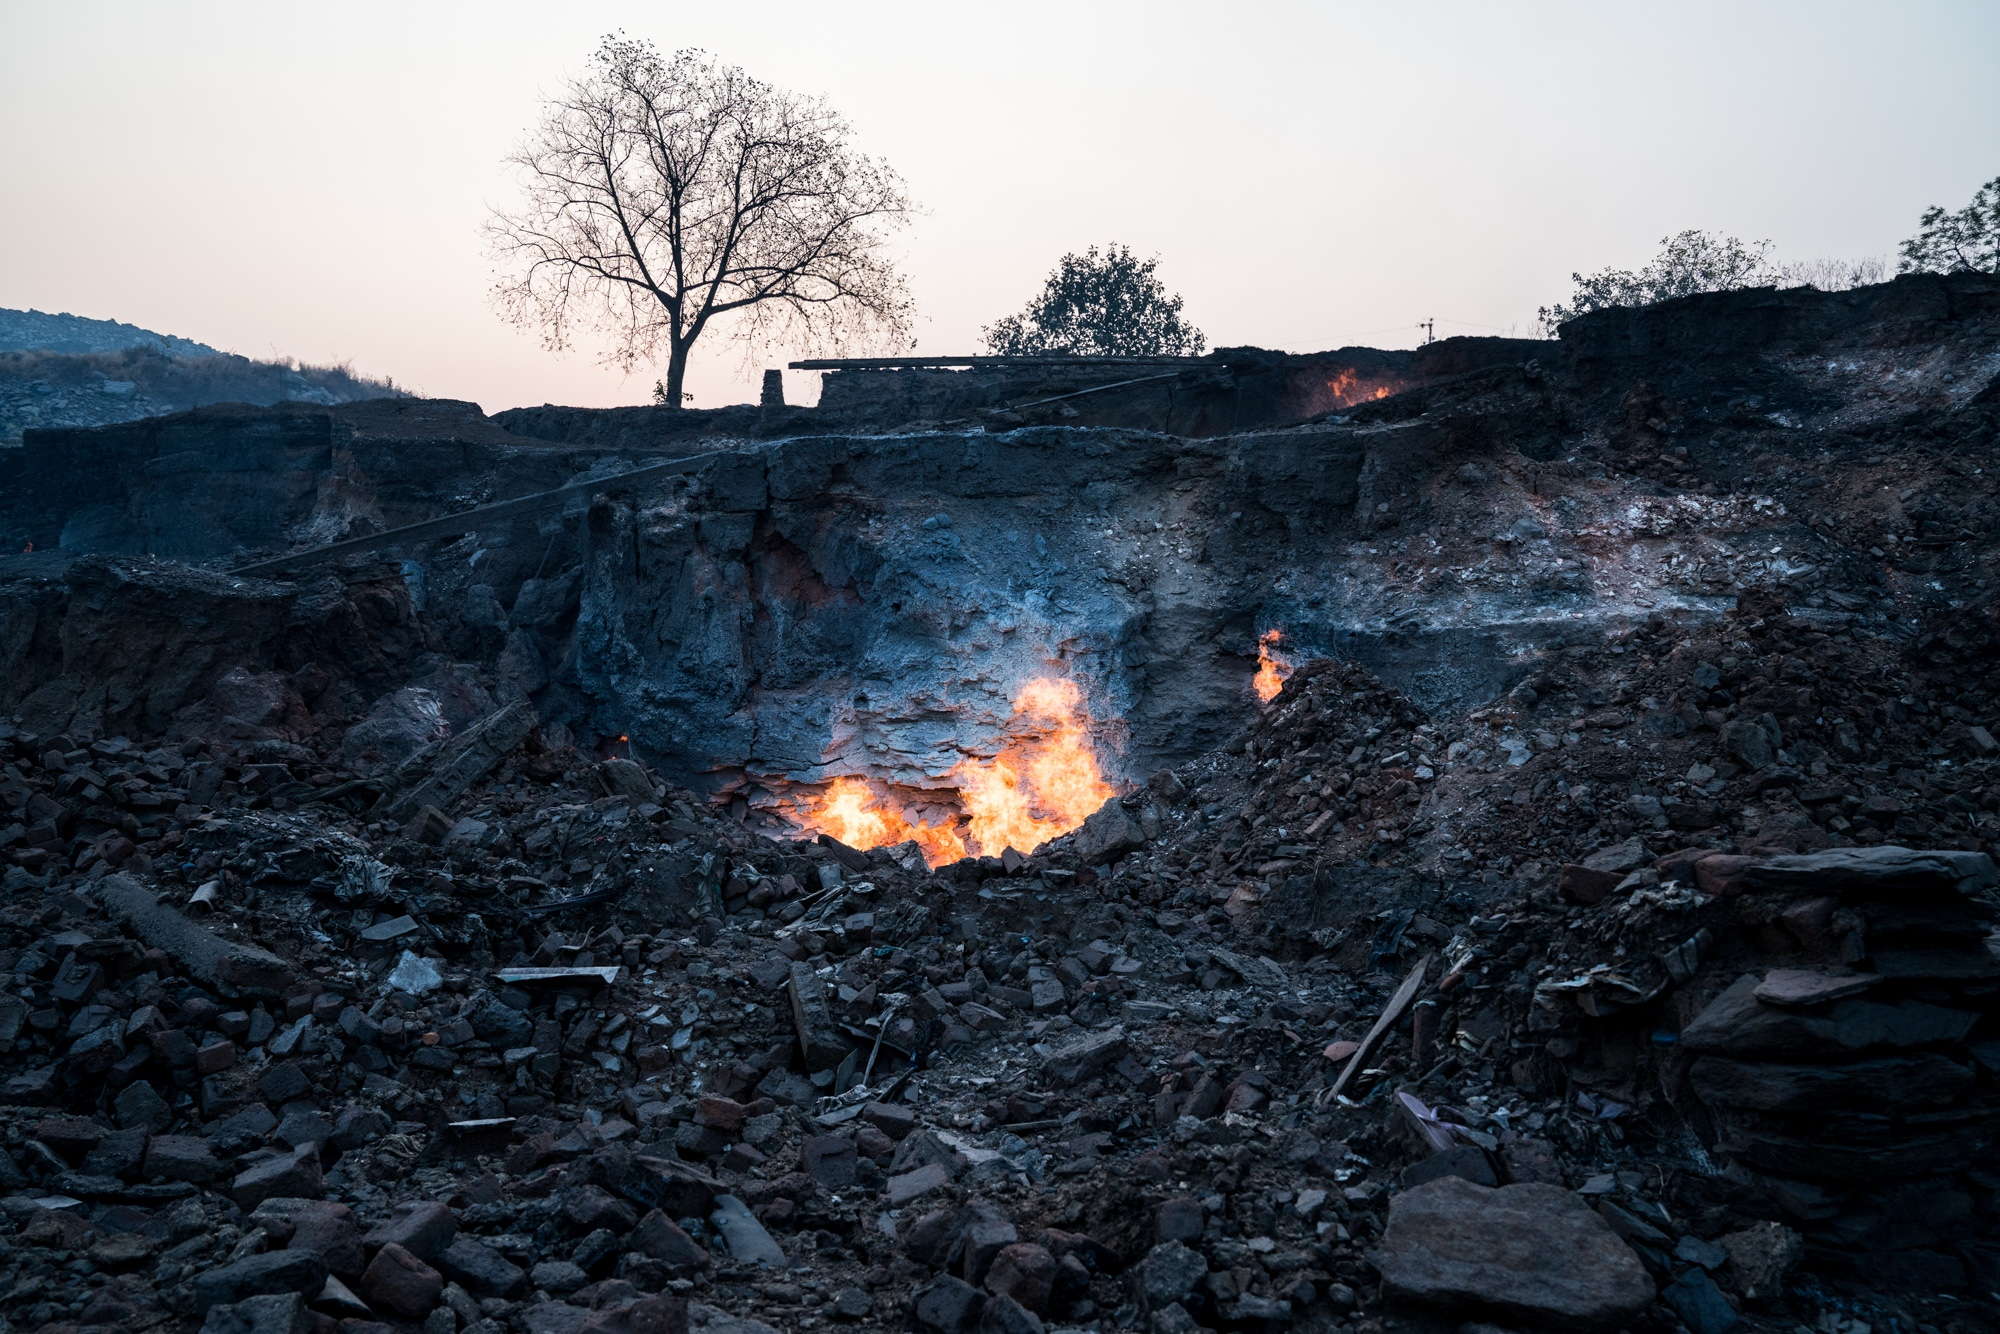 Once a village, it now lays in rubble due to underground fires that have destabilised the land below. Apart from destabilising the land, the fire releases a constant stream of black carbon and other dangerous gases and particulates. India.